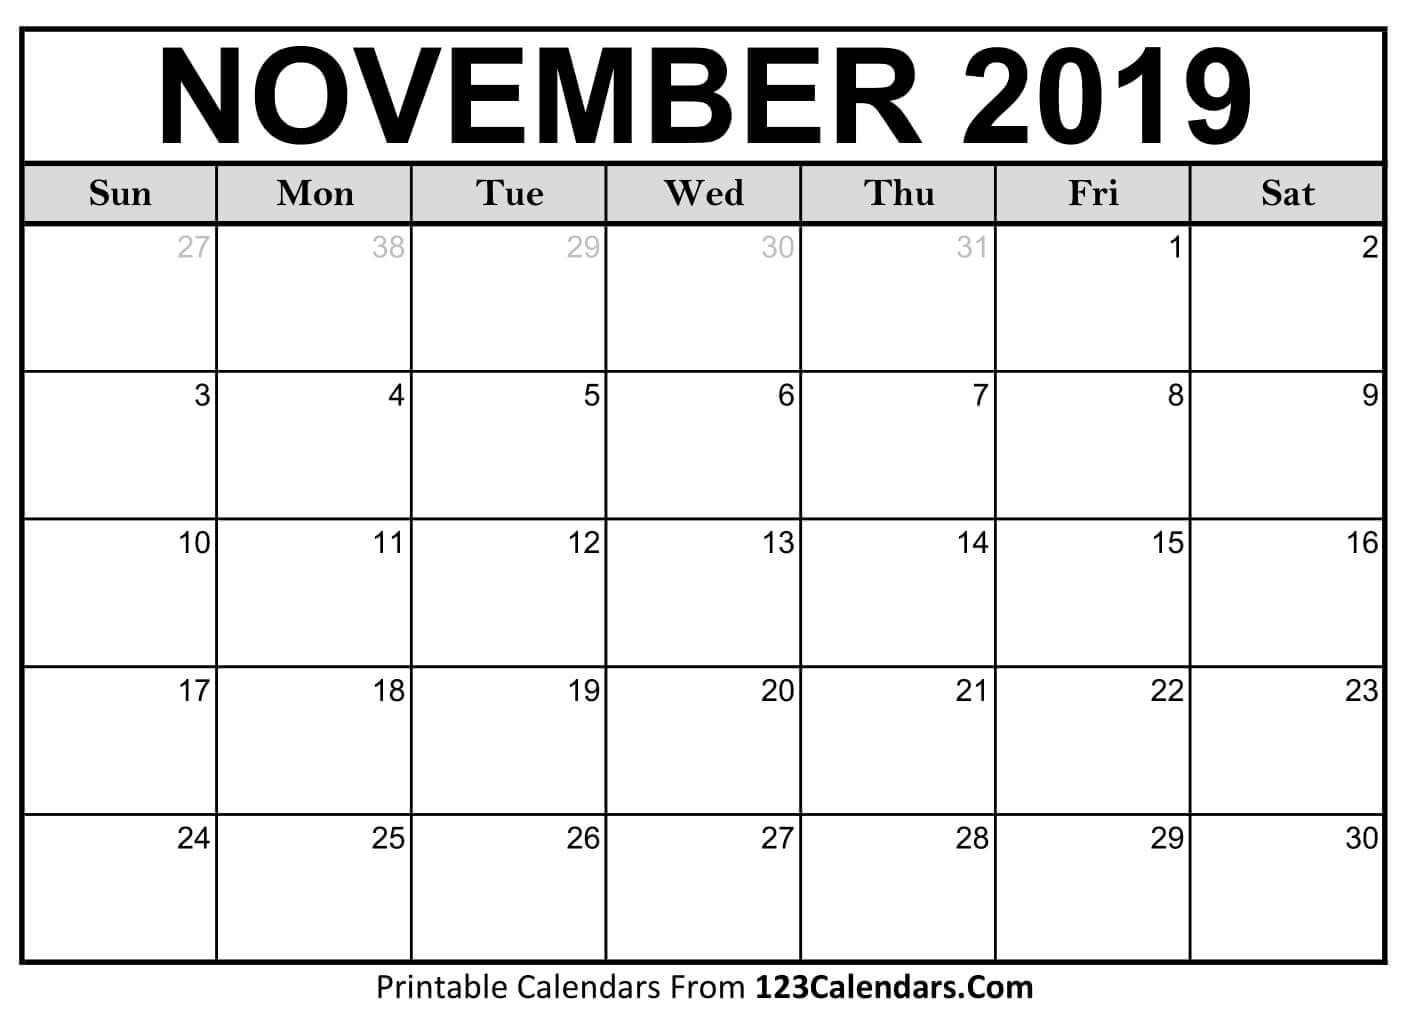 Printable November 2019 Calendar Templates - 123Calendars Calendar Of 2019 November